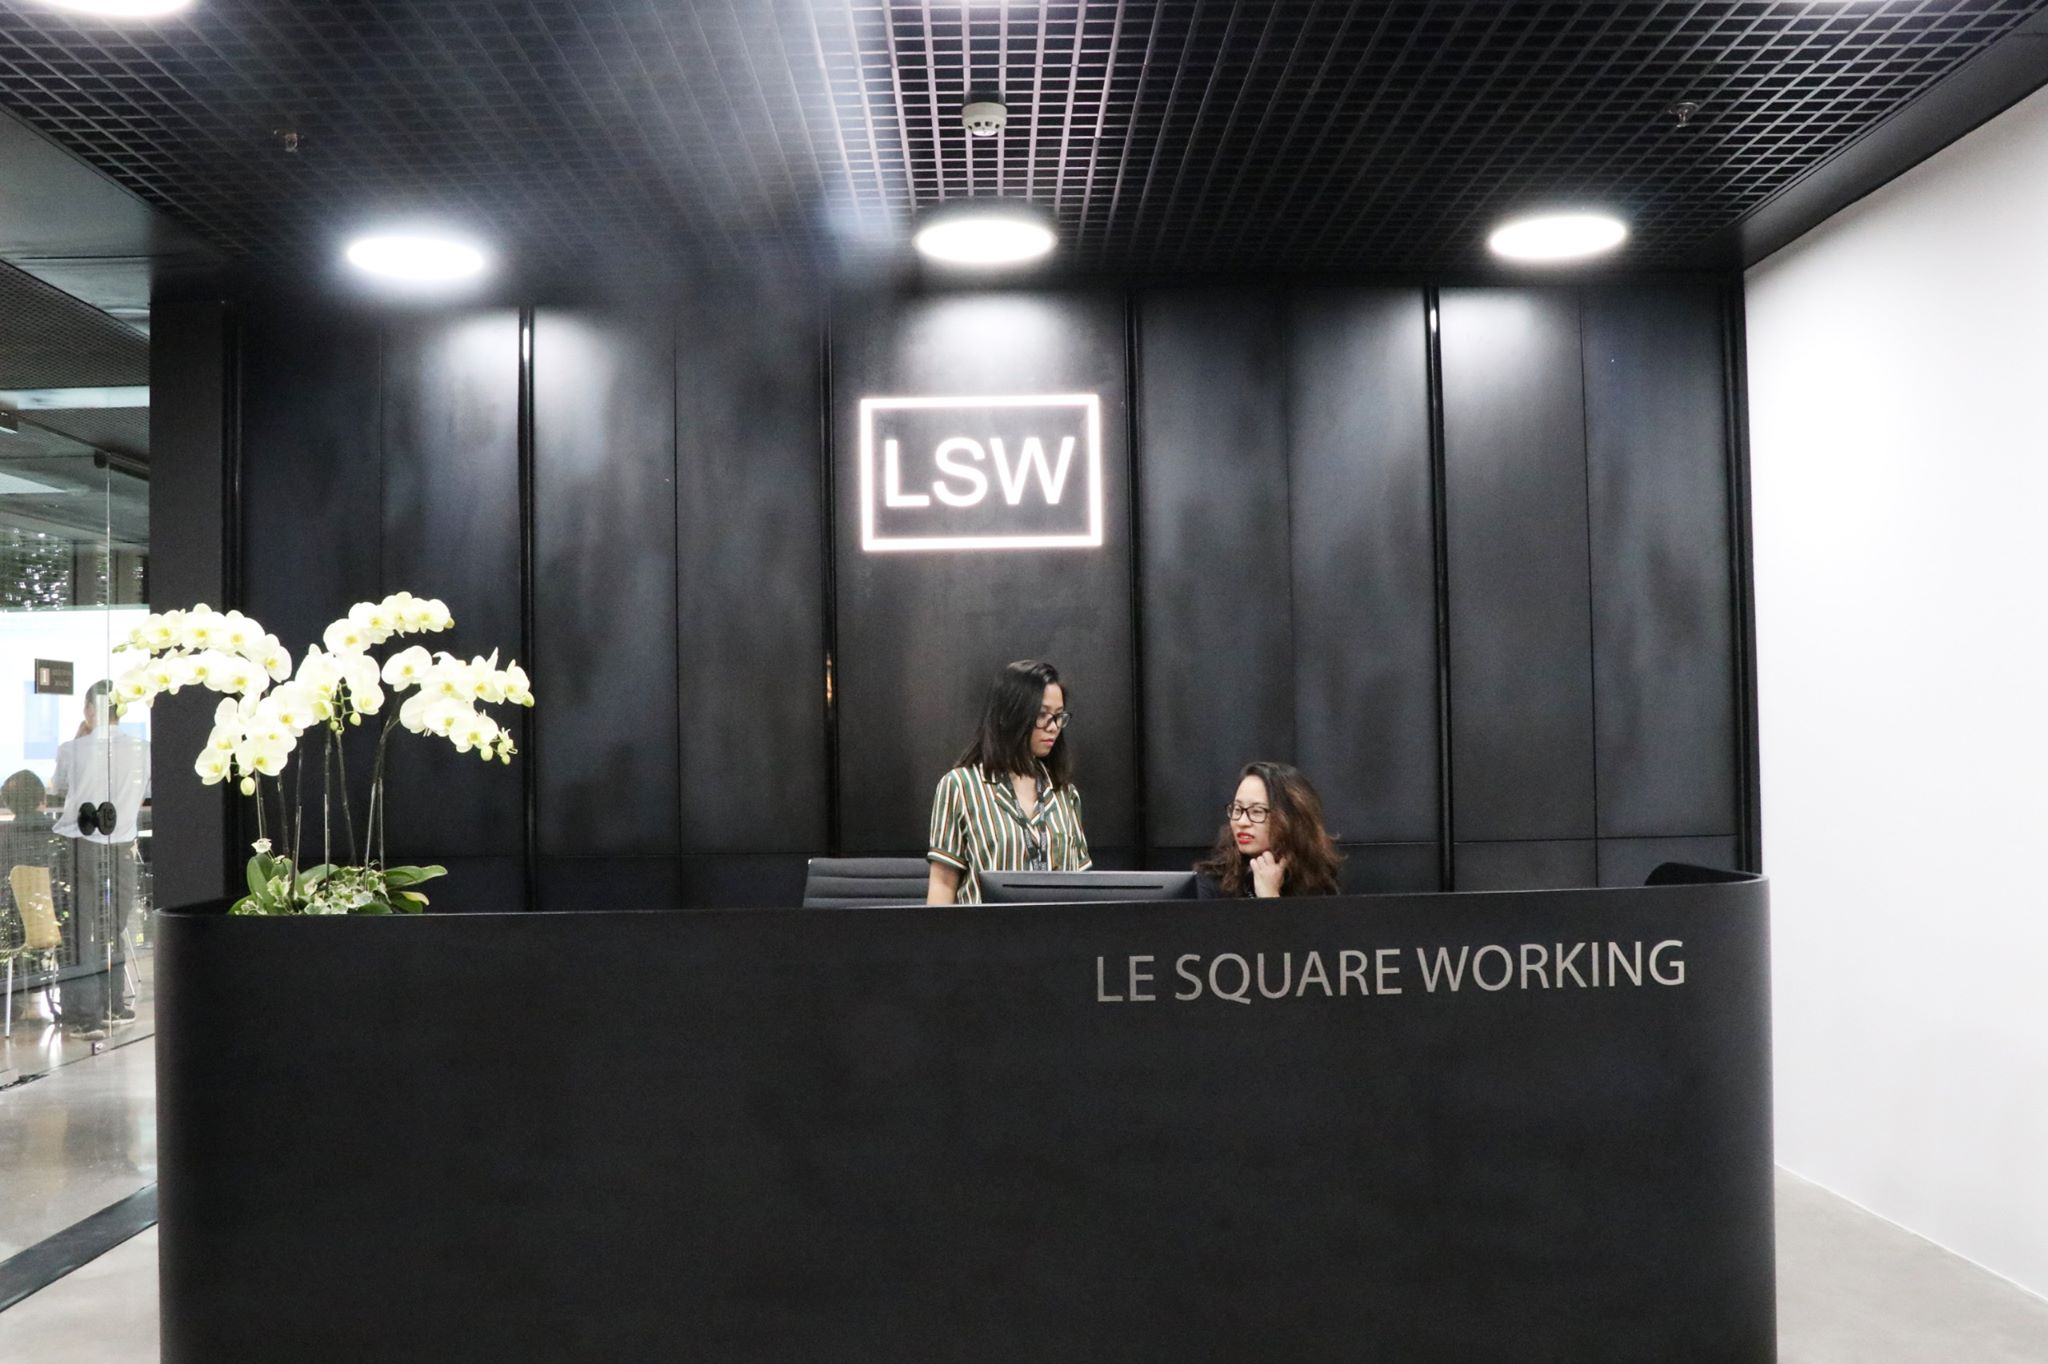 Le Square Working, Ho Chi Minh City